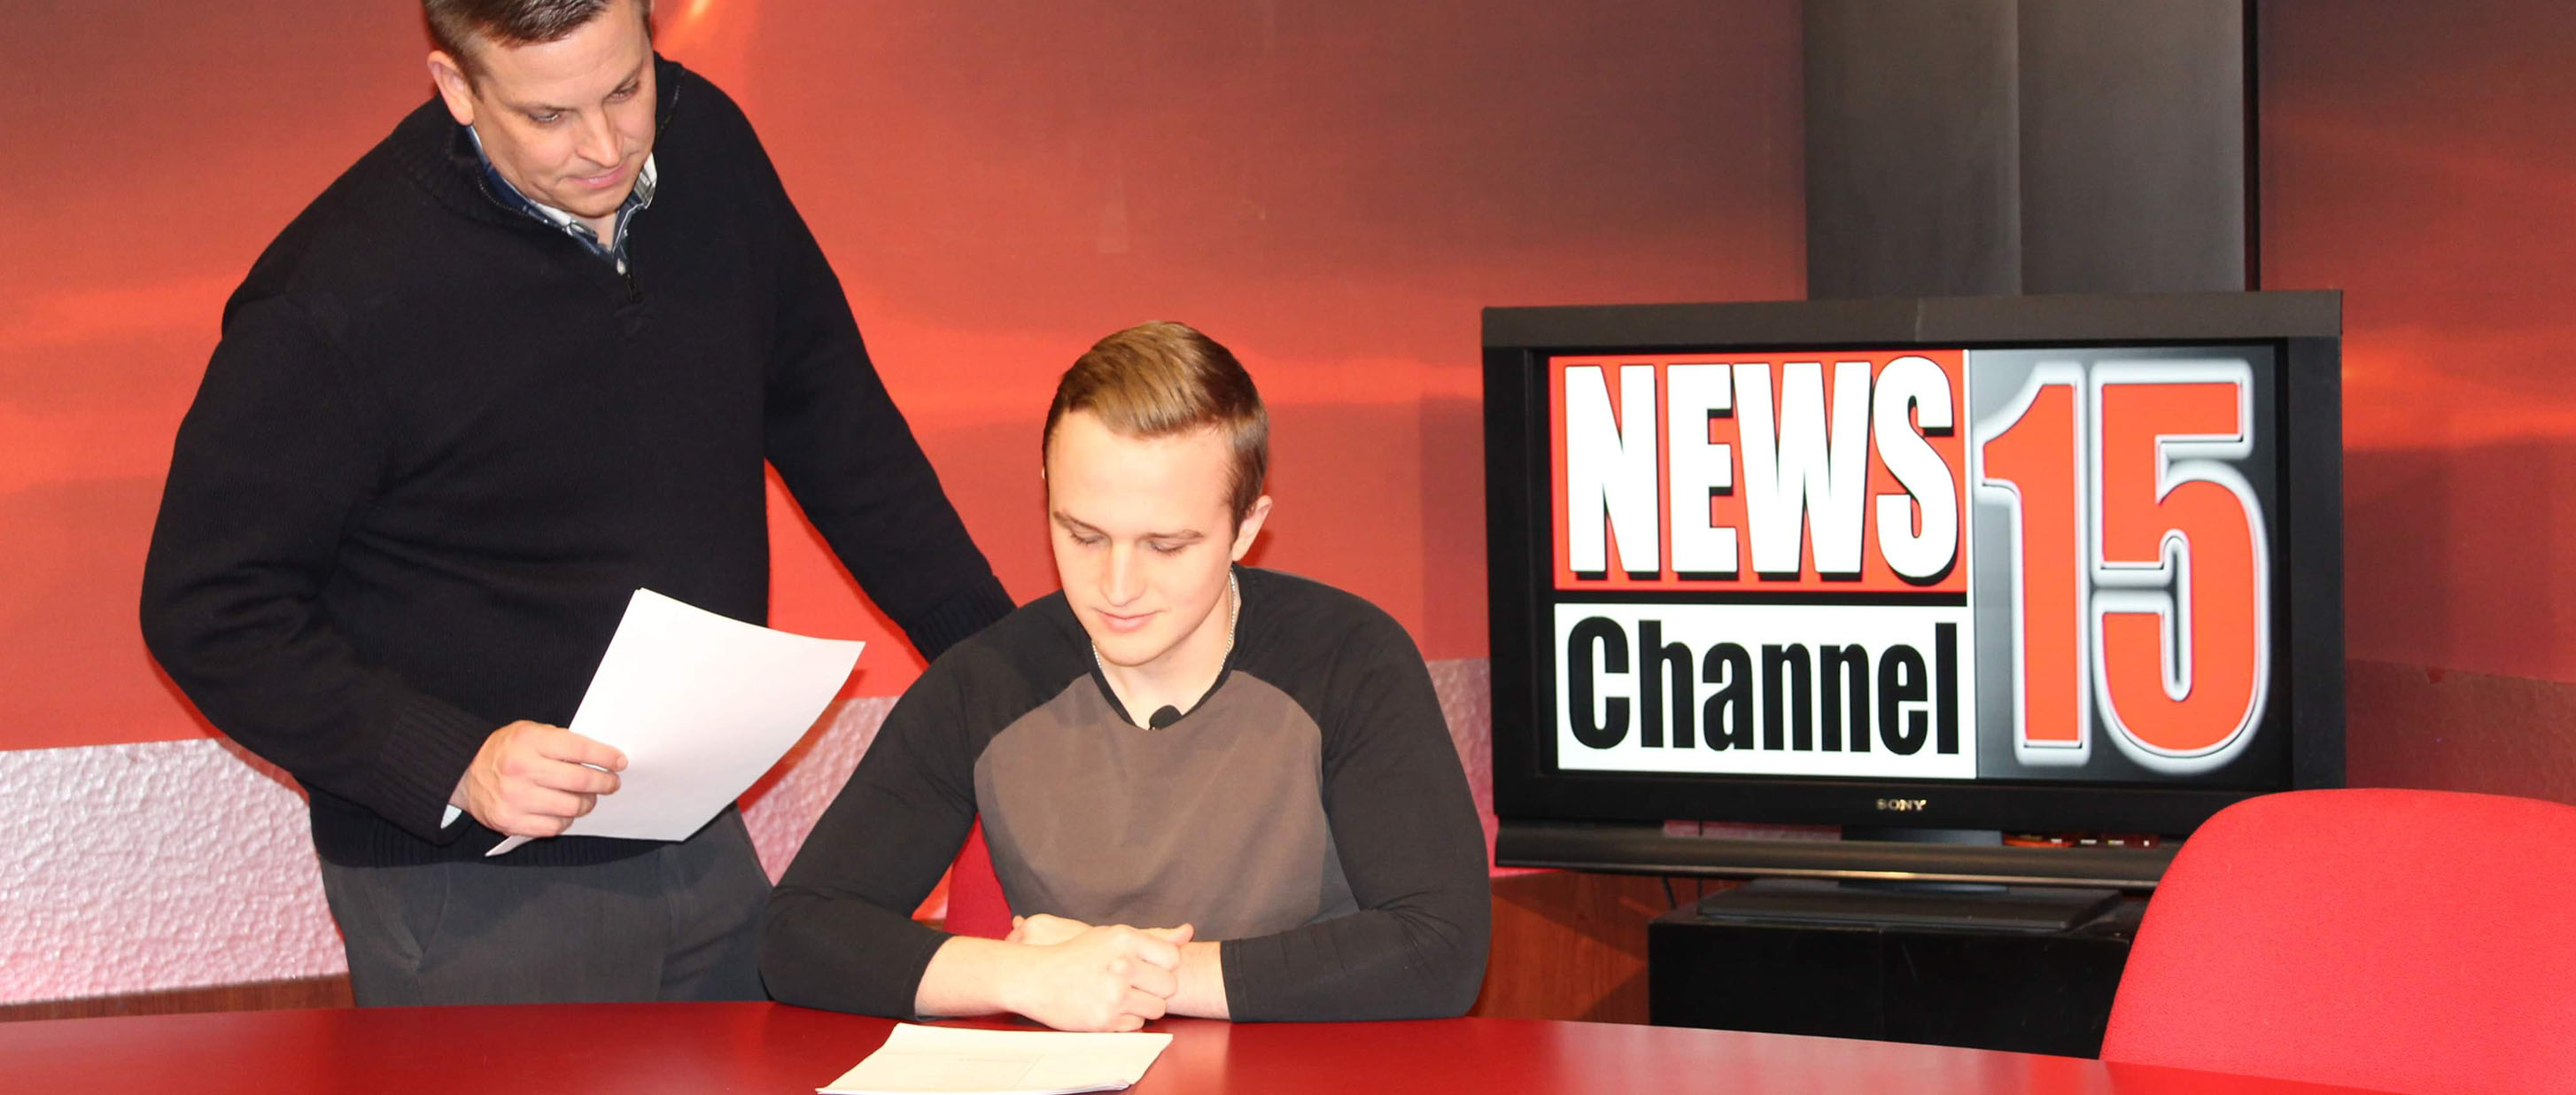 WVC Broadcasting Director Kyle peach coaches one of his students before a broadcast.